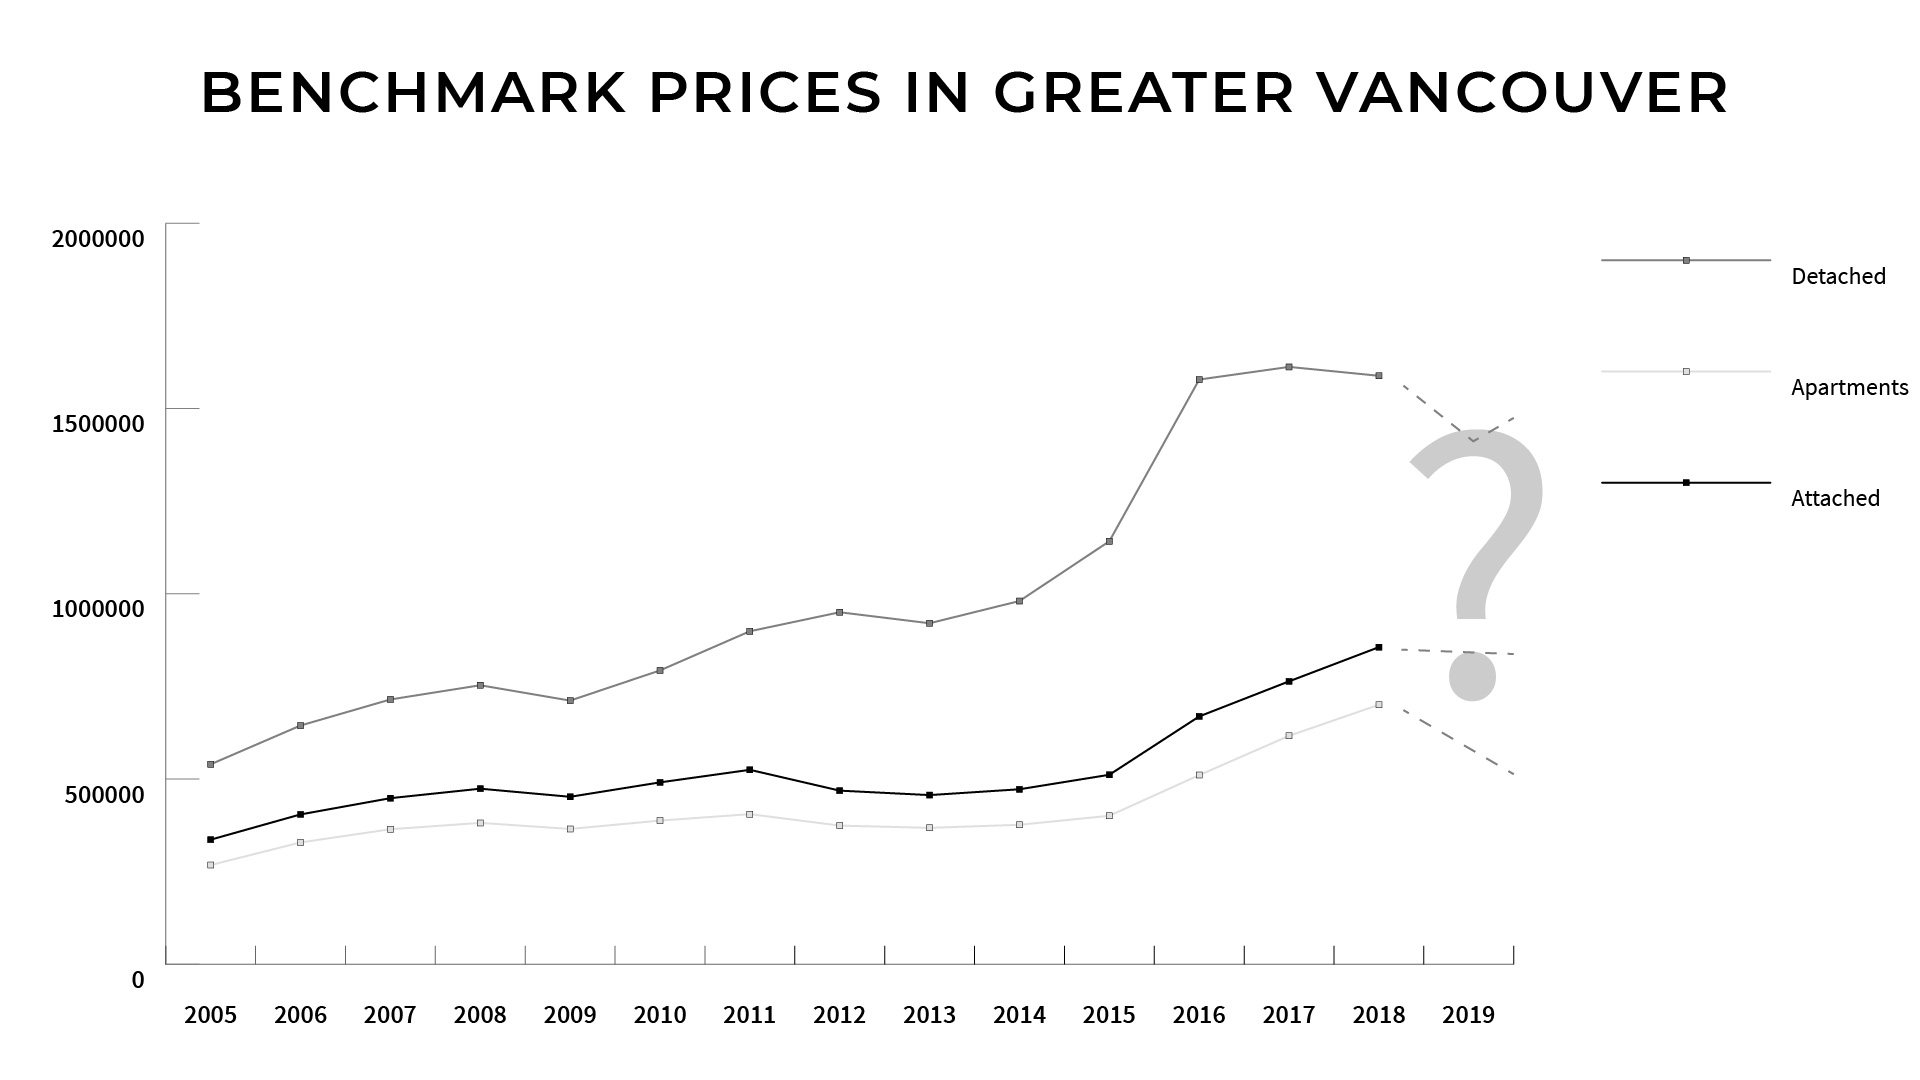 Greater Vancouver Real Estate Prices from 2005 to 2019